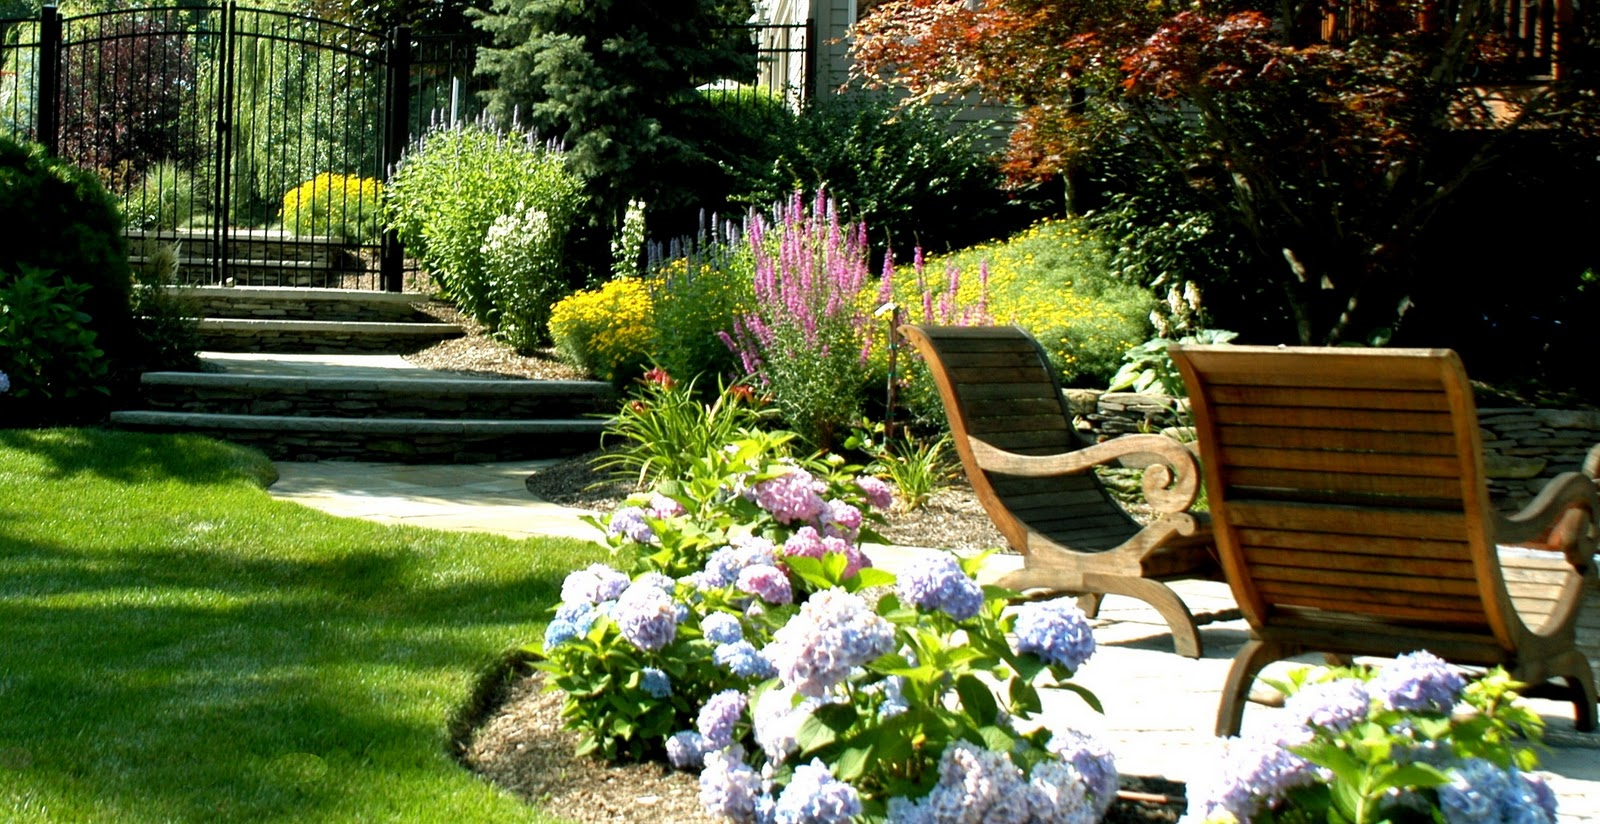 Hightechlandscapes new jersey landscape design for Home garden landscape designs